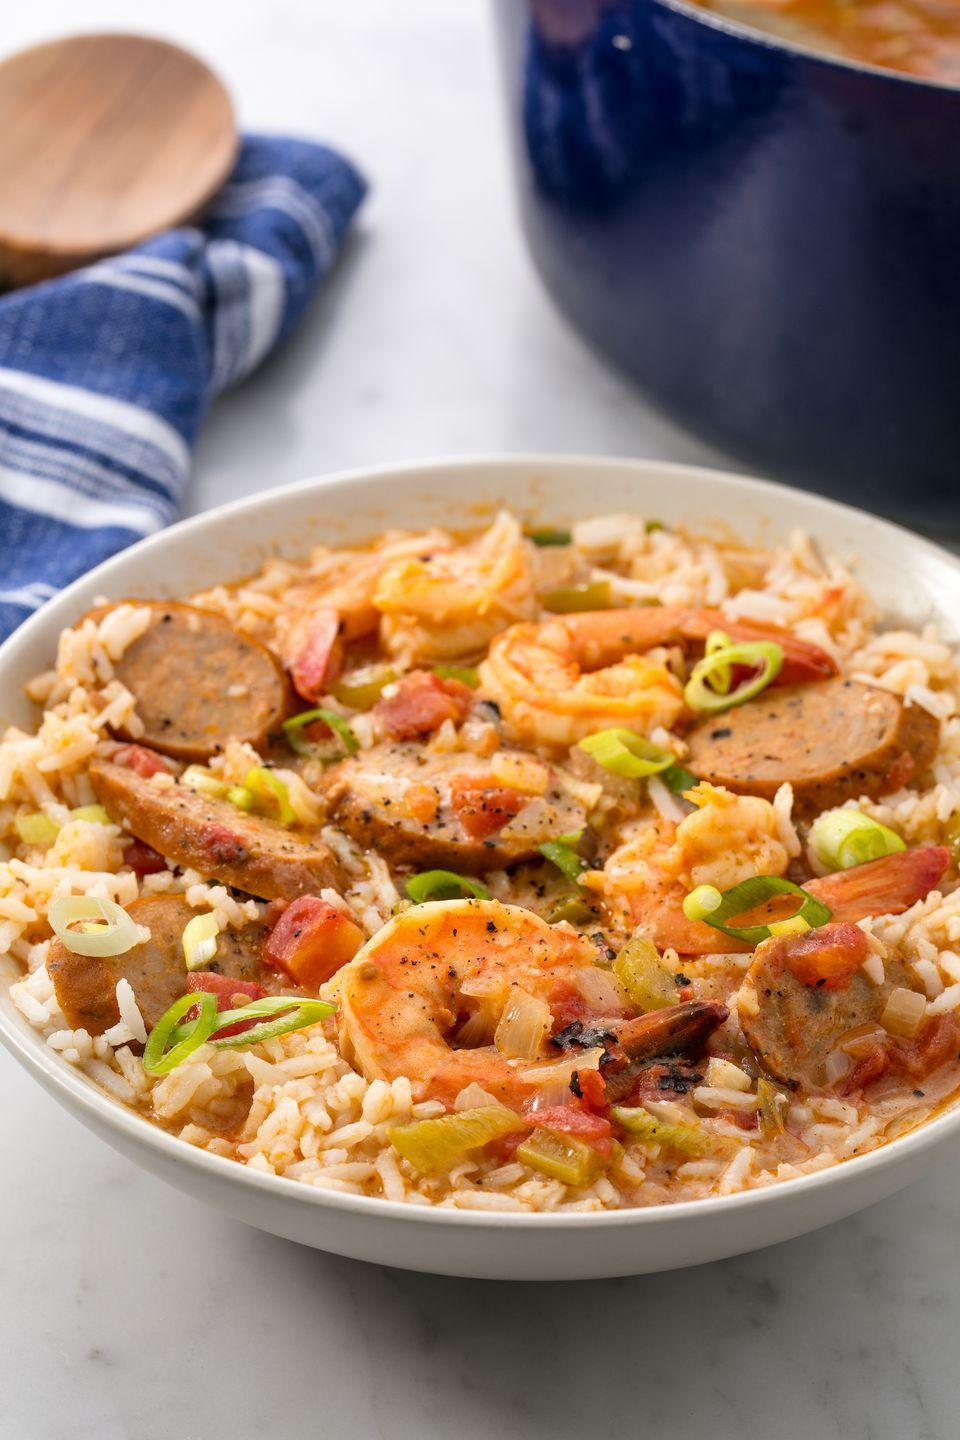 "<p>More like YUMbo.</p><p>Get the recipe from <a href=""https://www.delish.com/cooking/recipe-ideas/recipes/a54681/easy-seafood-gumbo-recipe/"" rel=""nofollow noopener"" target=""_blank"" data-ylk=""slk:Delish"" class=""link rapid-noclick-resp"">Delish</a>.</p>"